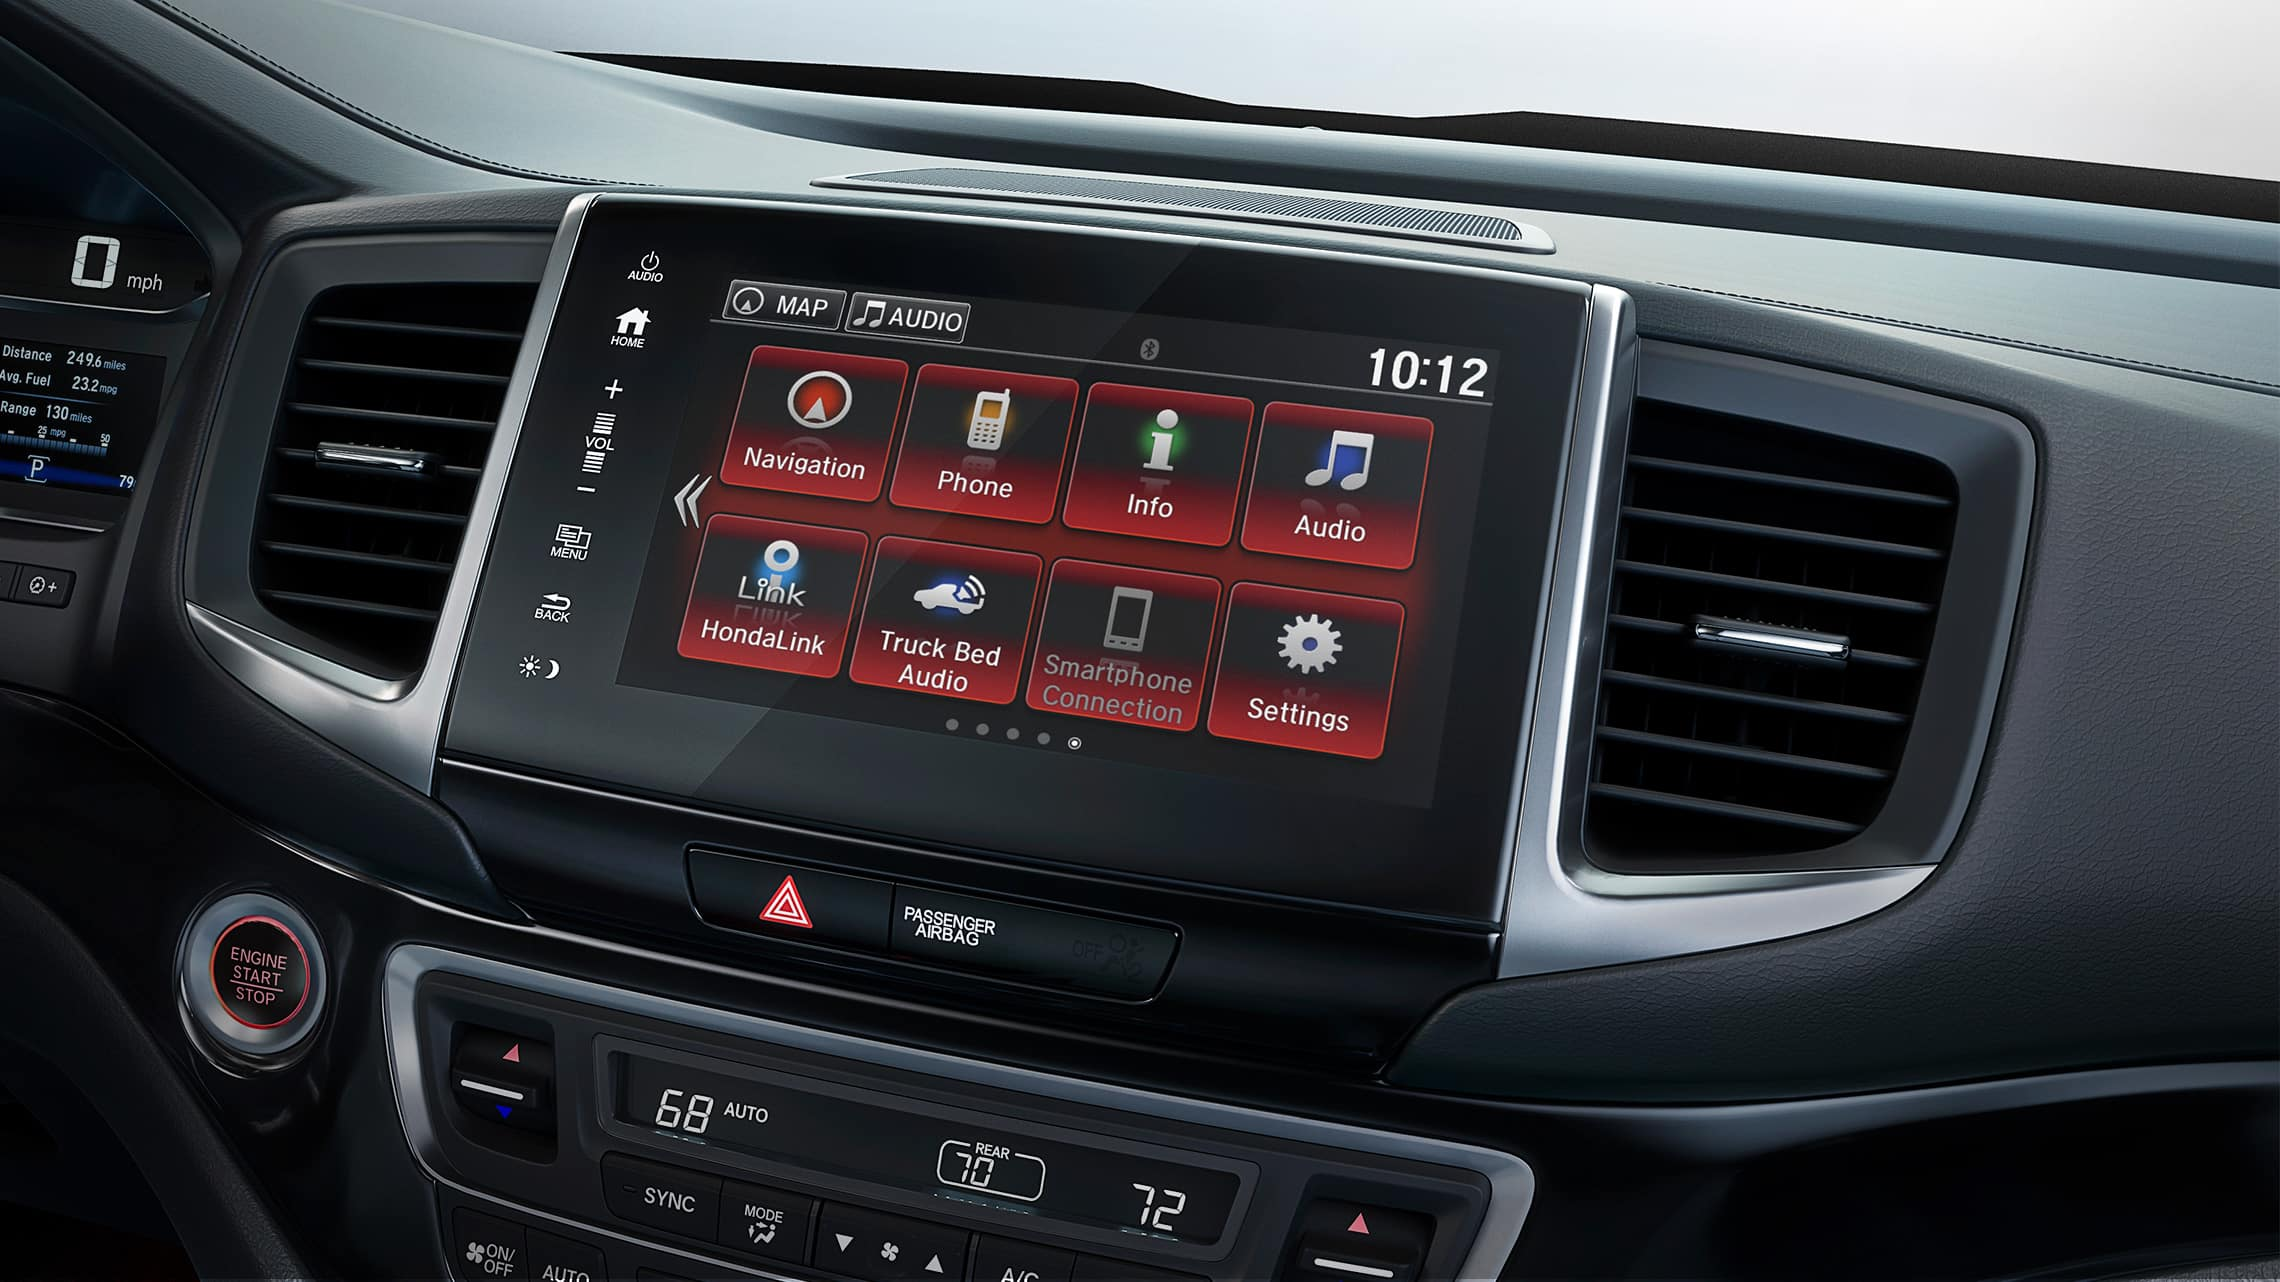 Display Audio touch-screen detail in the 2020 Honda Ridgeline Black Edition.